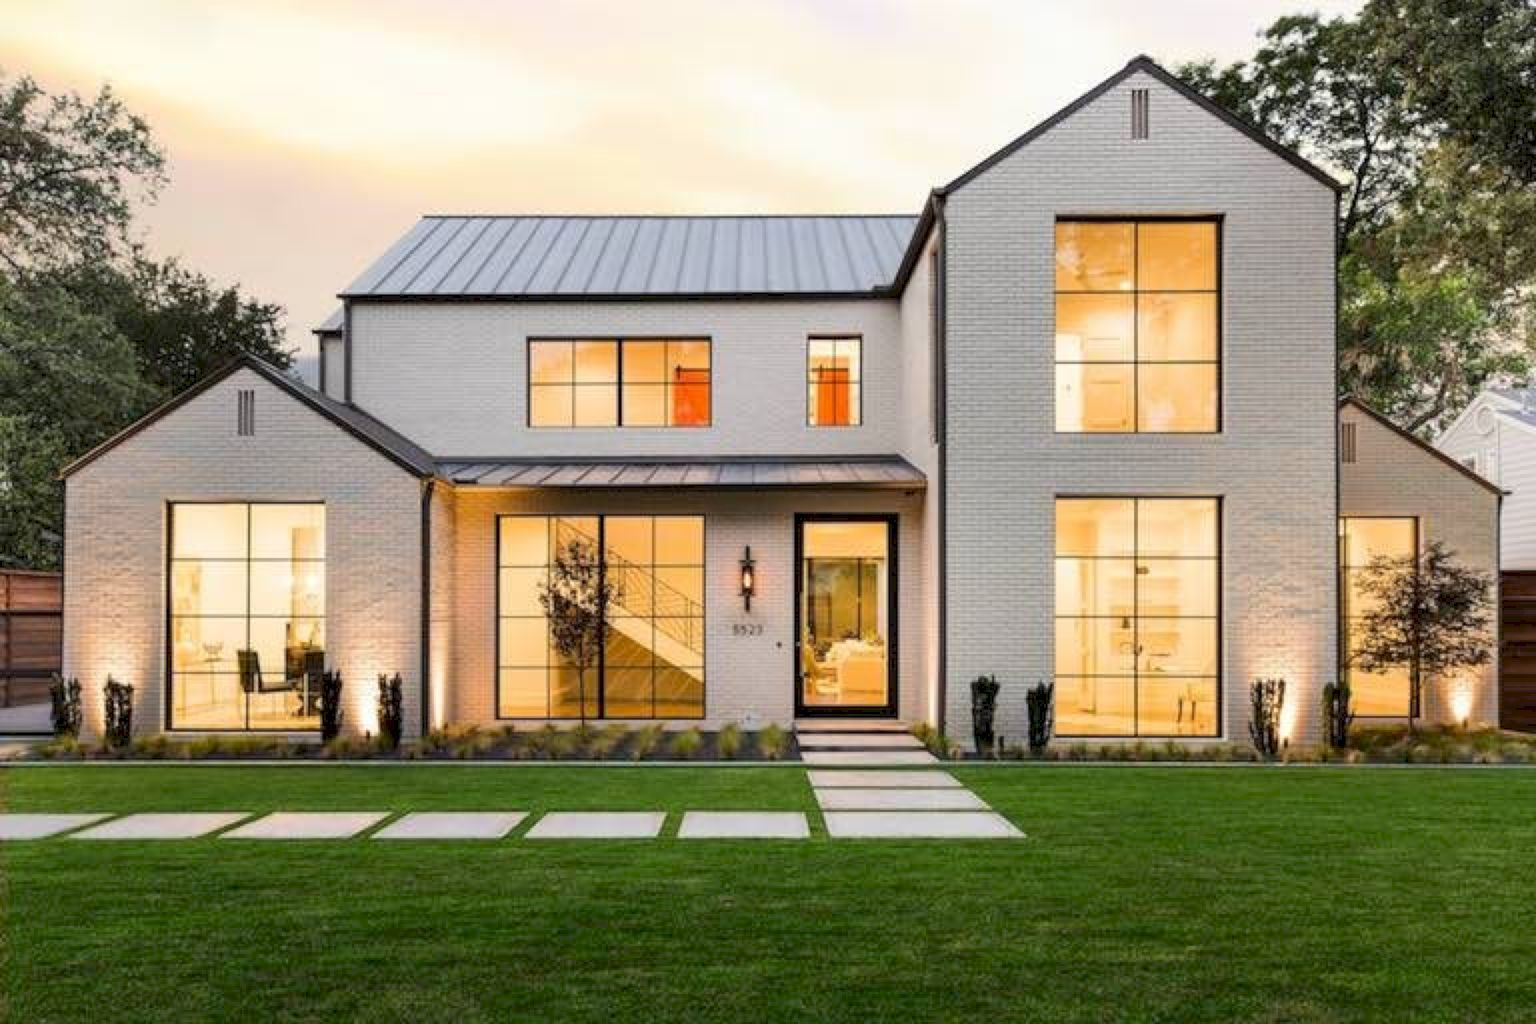 Modern Farmhouse Houston - Build on your lot Houston